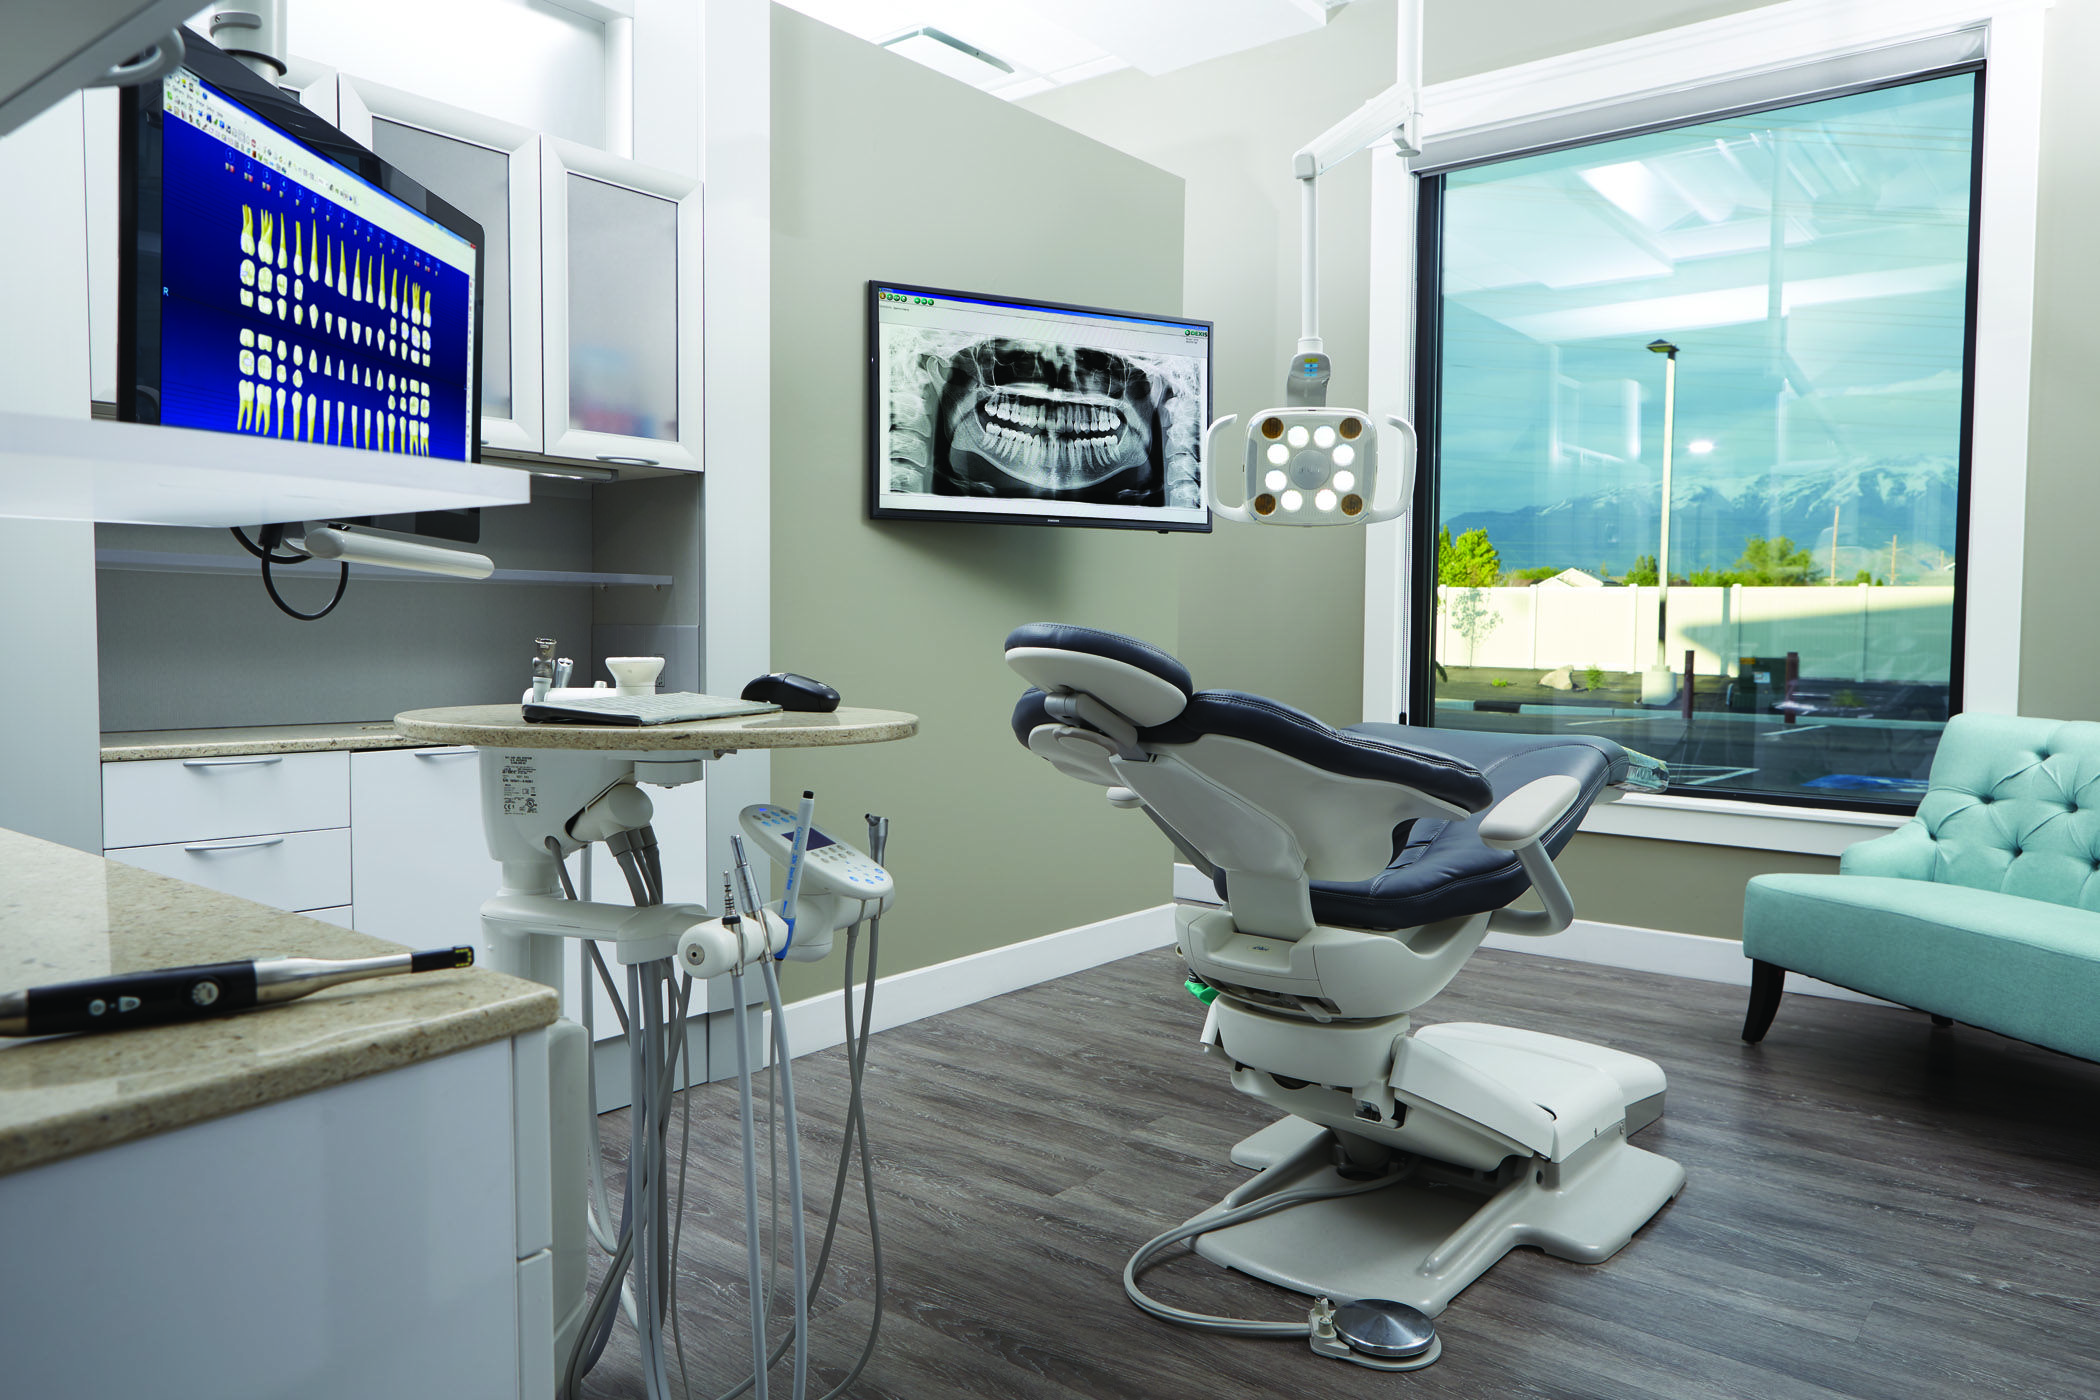 Pin on Dental Office Design